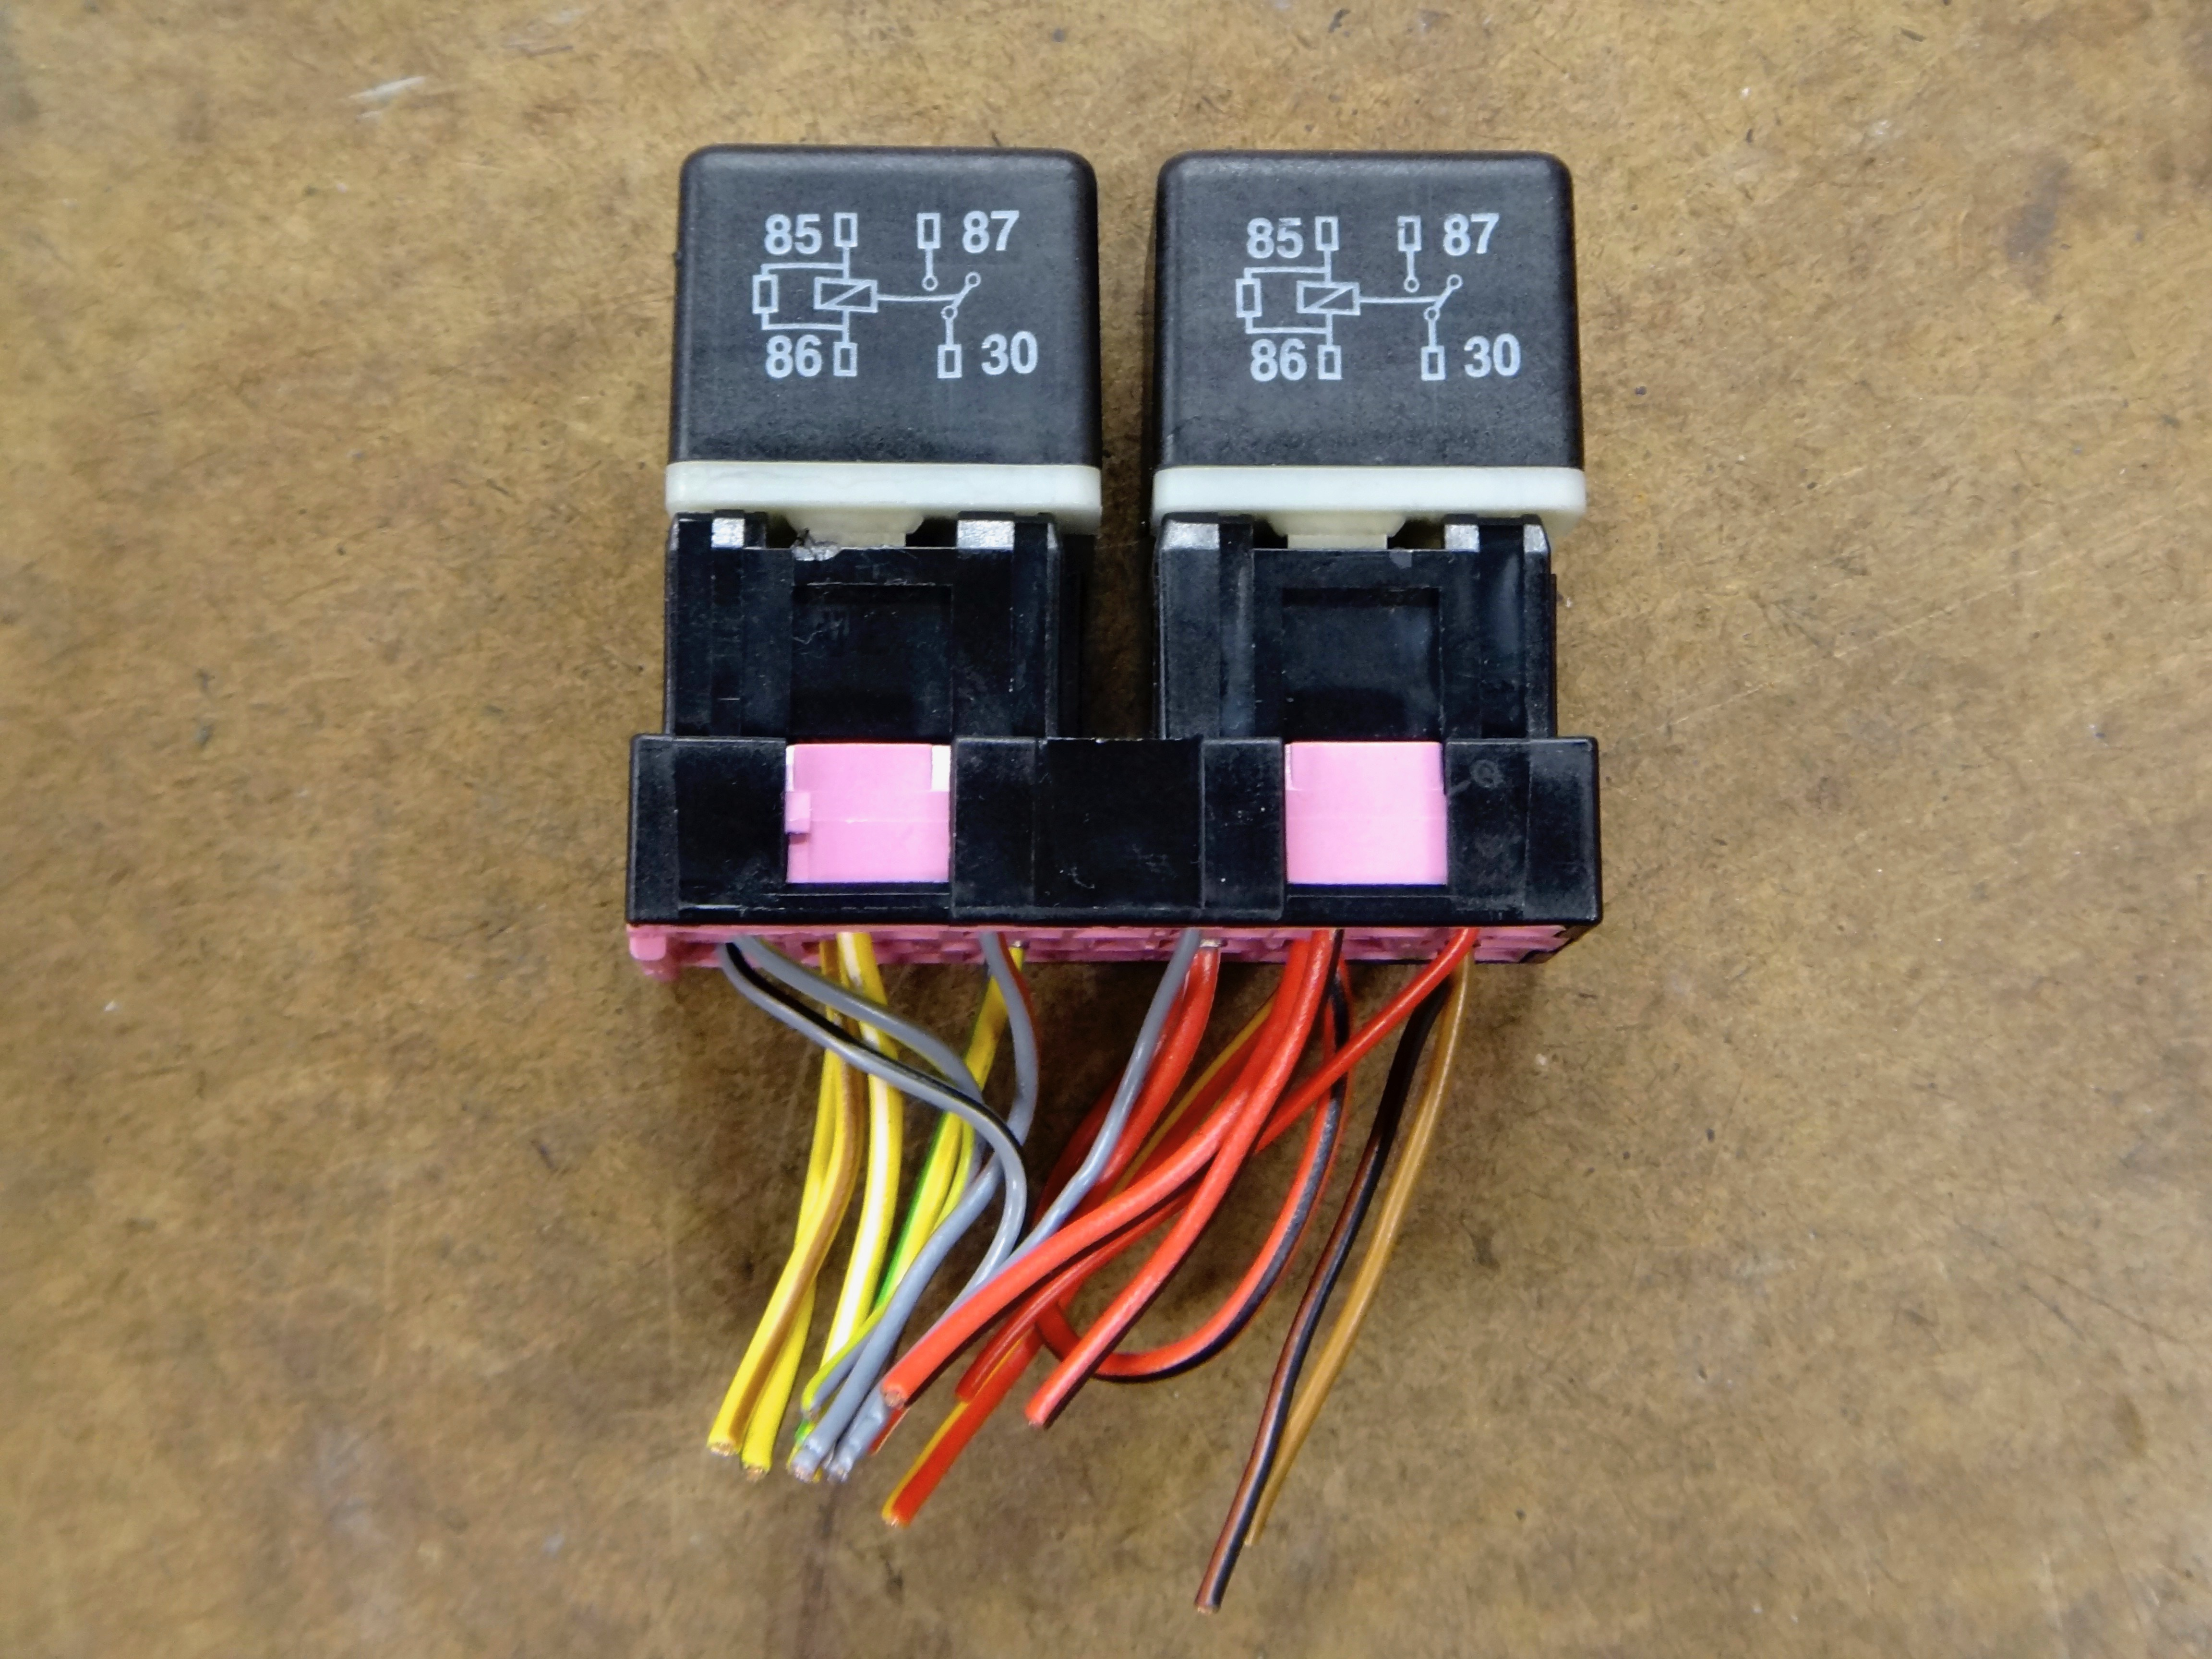 A4 B5 Diy Install Headlight Relays Wiring Relay Pins We Will Only Be Using Four Wires Per So Can Remove The Majority Of In Plug Removing A Headache